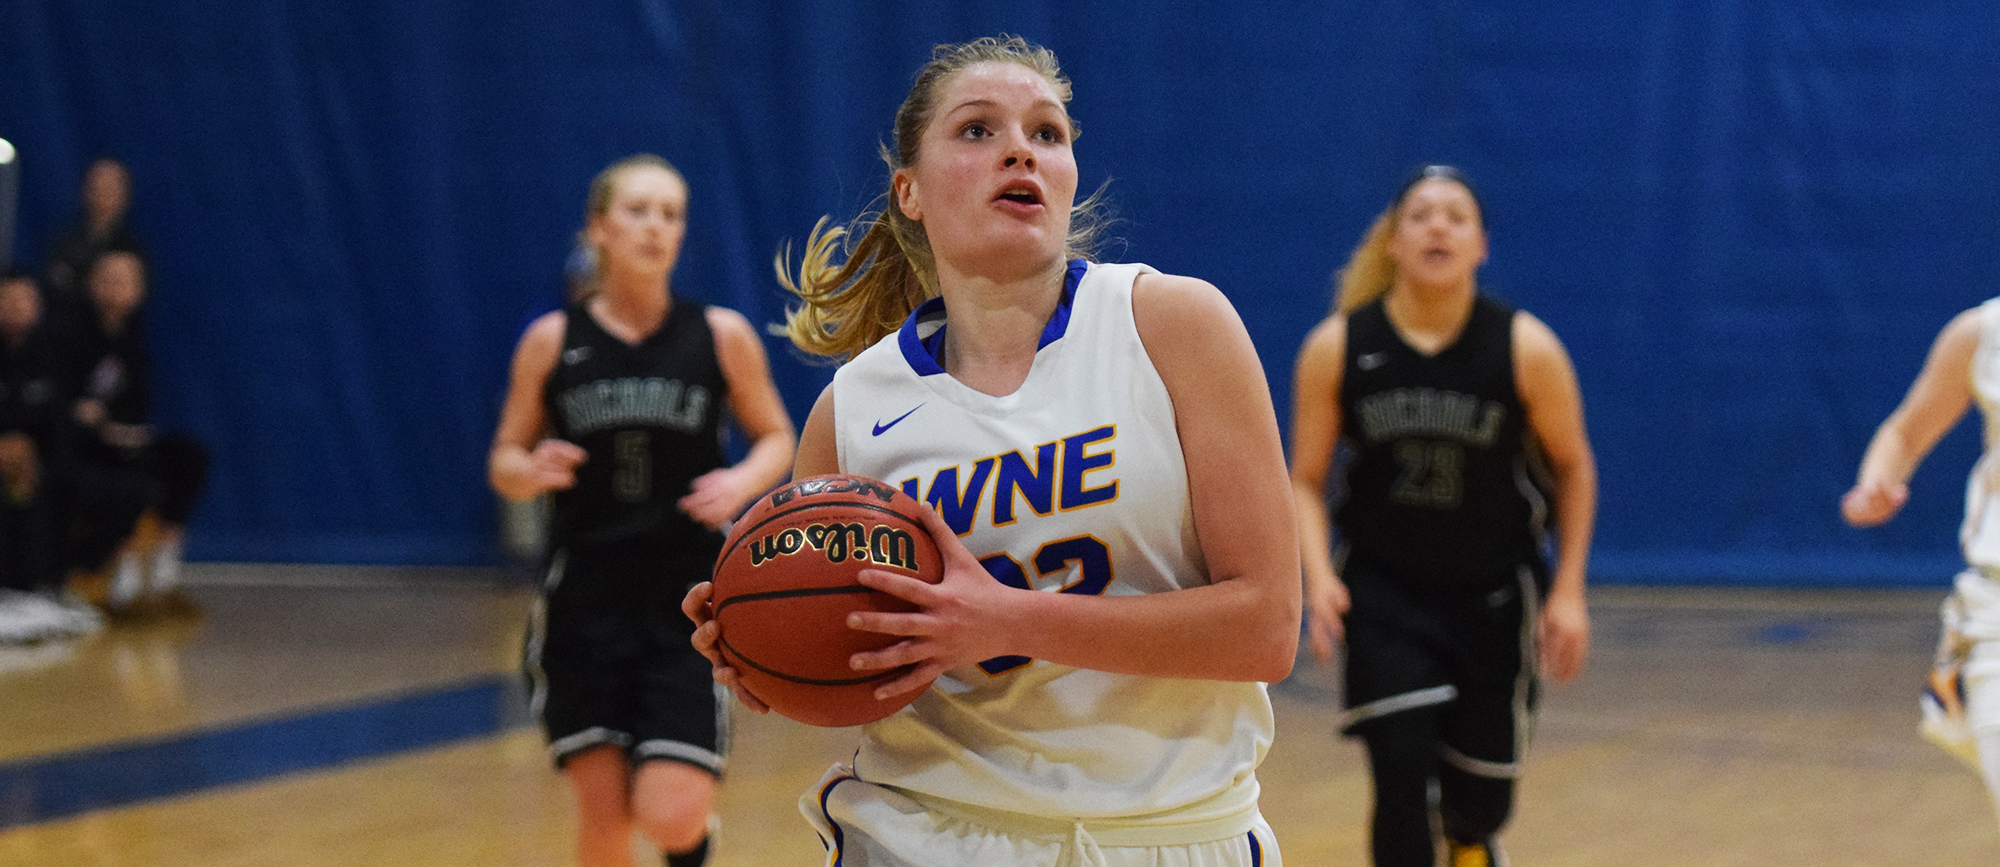 Sophomore Courtney Carlson recorded her first career double-double with 16 points, 11 rebounds, three steals and three blocks in Western New England's 60-52 win over Nichols on Saturday. (Photo by Rachael Margossian)